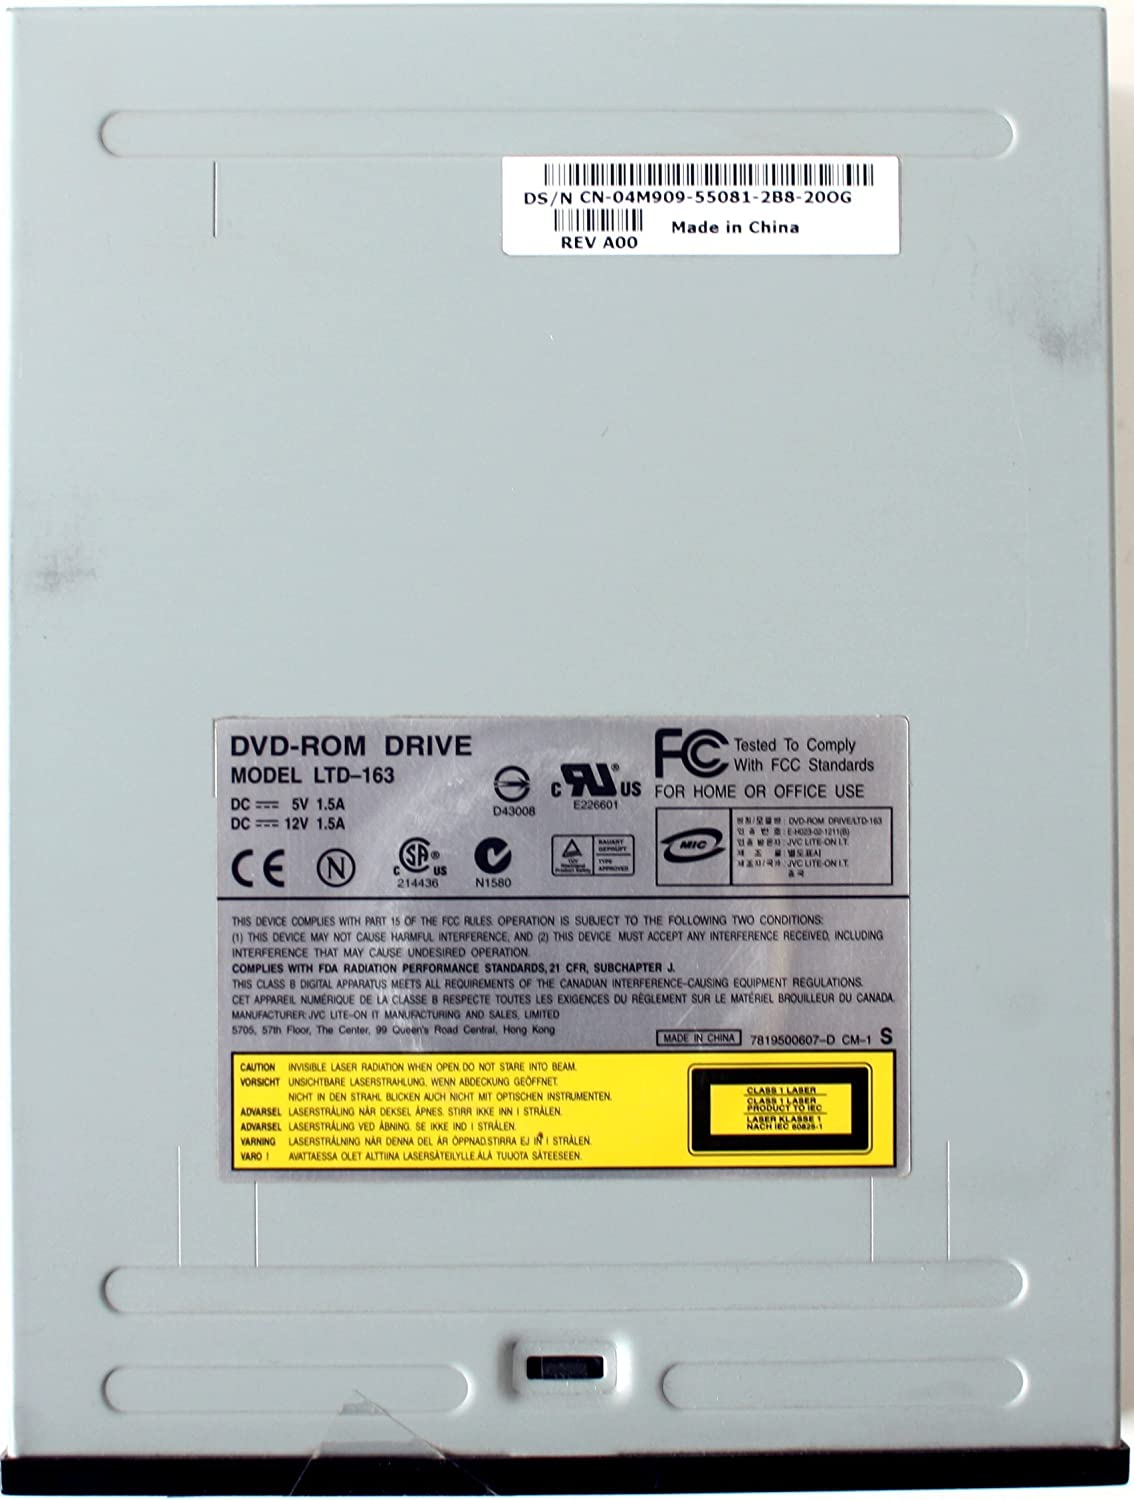 BLACK DVD-ROM DRIVE LTD-163 CN-08Y926-55081-34D-2015 REV A00